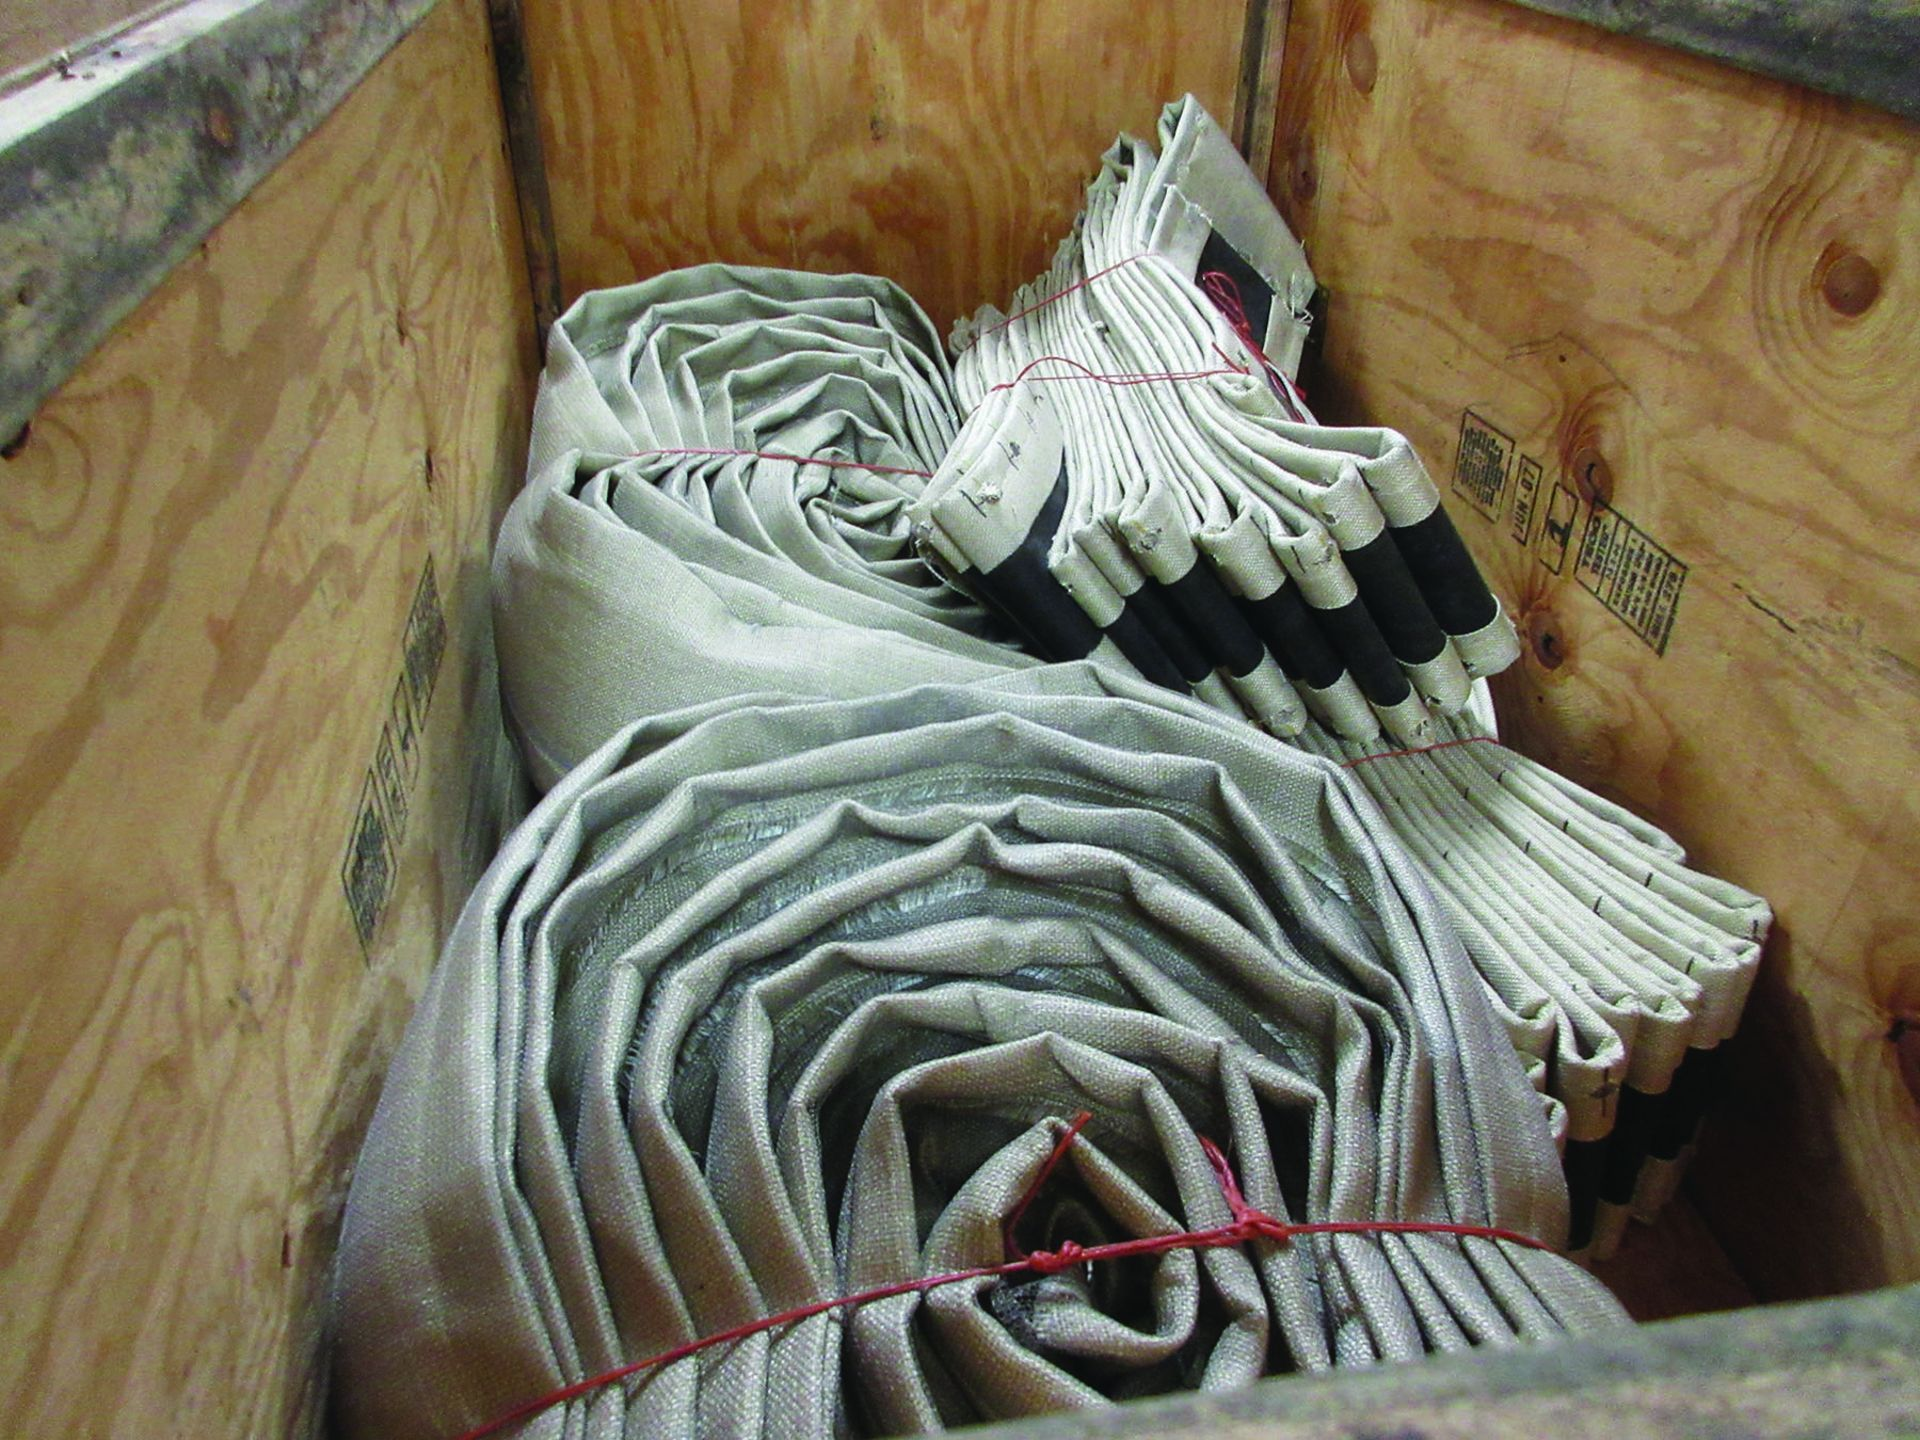 PALLET OF GAS DUCT TO AIR HEATER PRE FAB STEEL, OTHER FAB STEEL, V-BELTS, BELLOWS, GRID G8 - Image 6 of 6